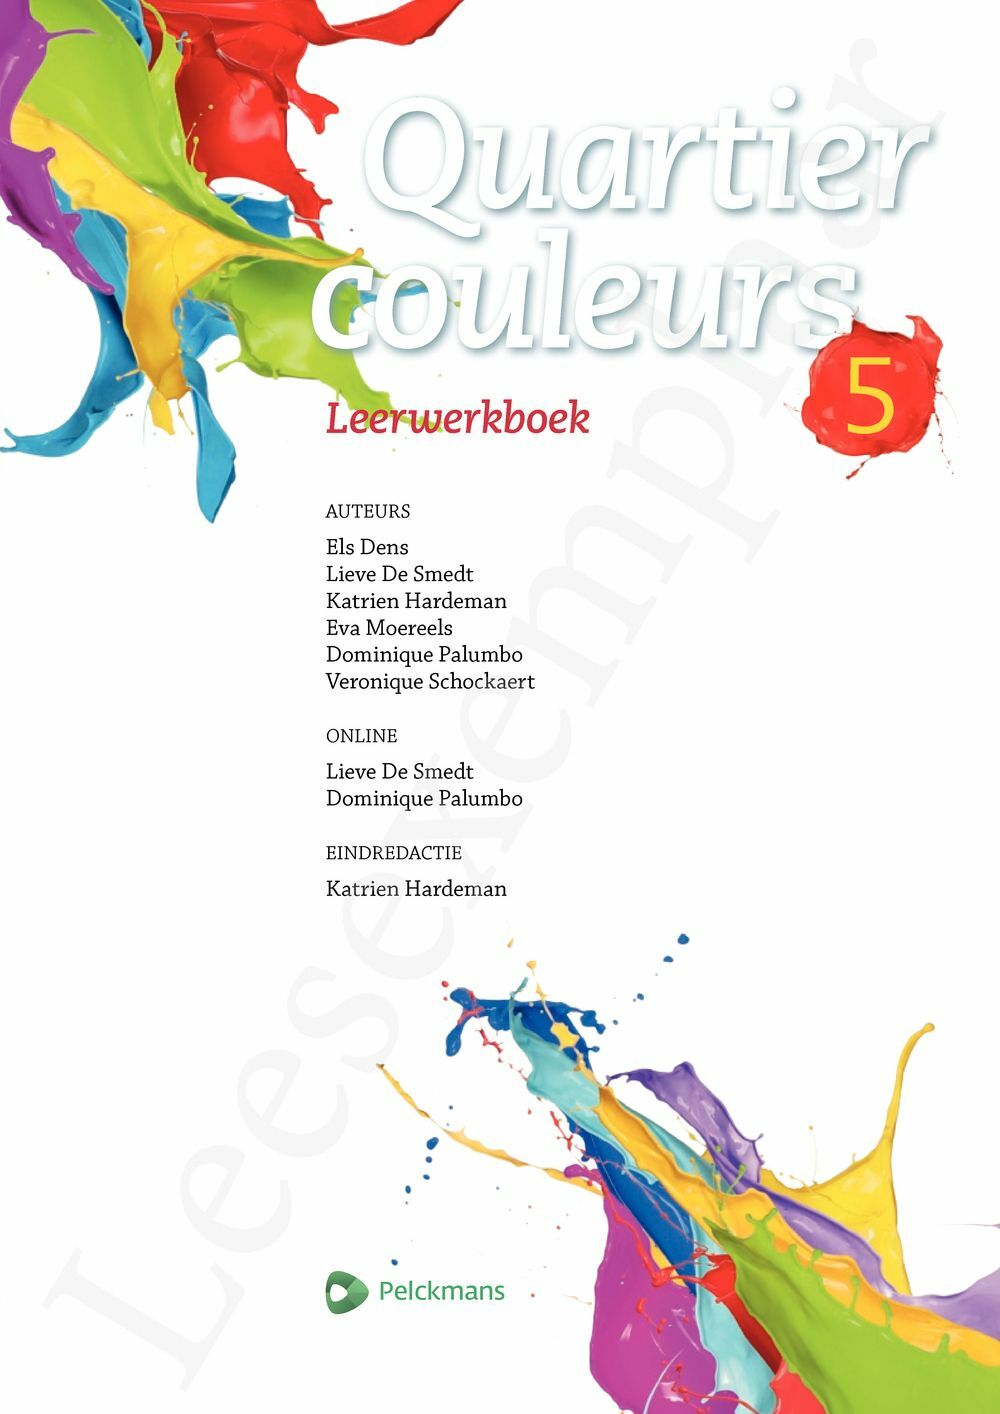 Preview: Quartier couleurs 5 leerwerkboek